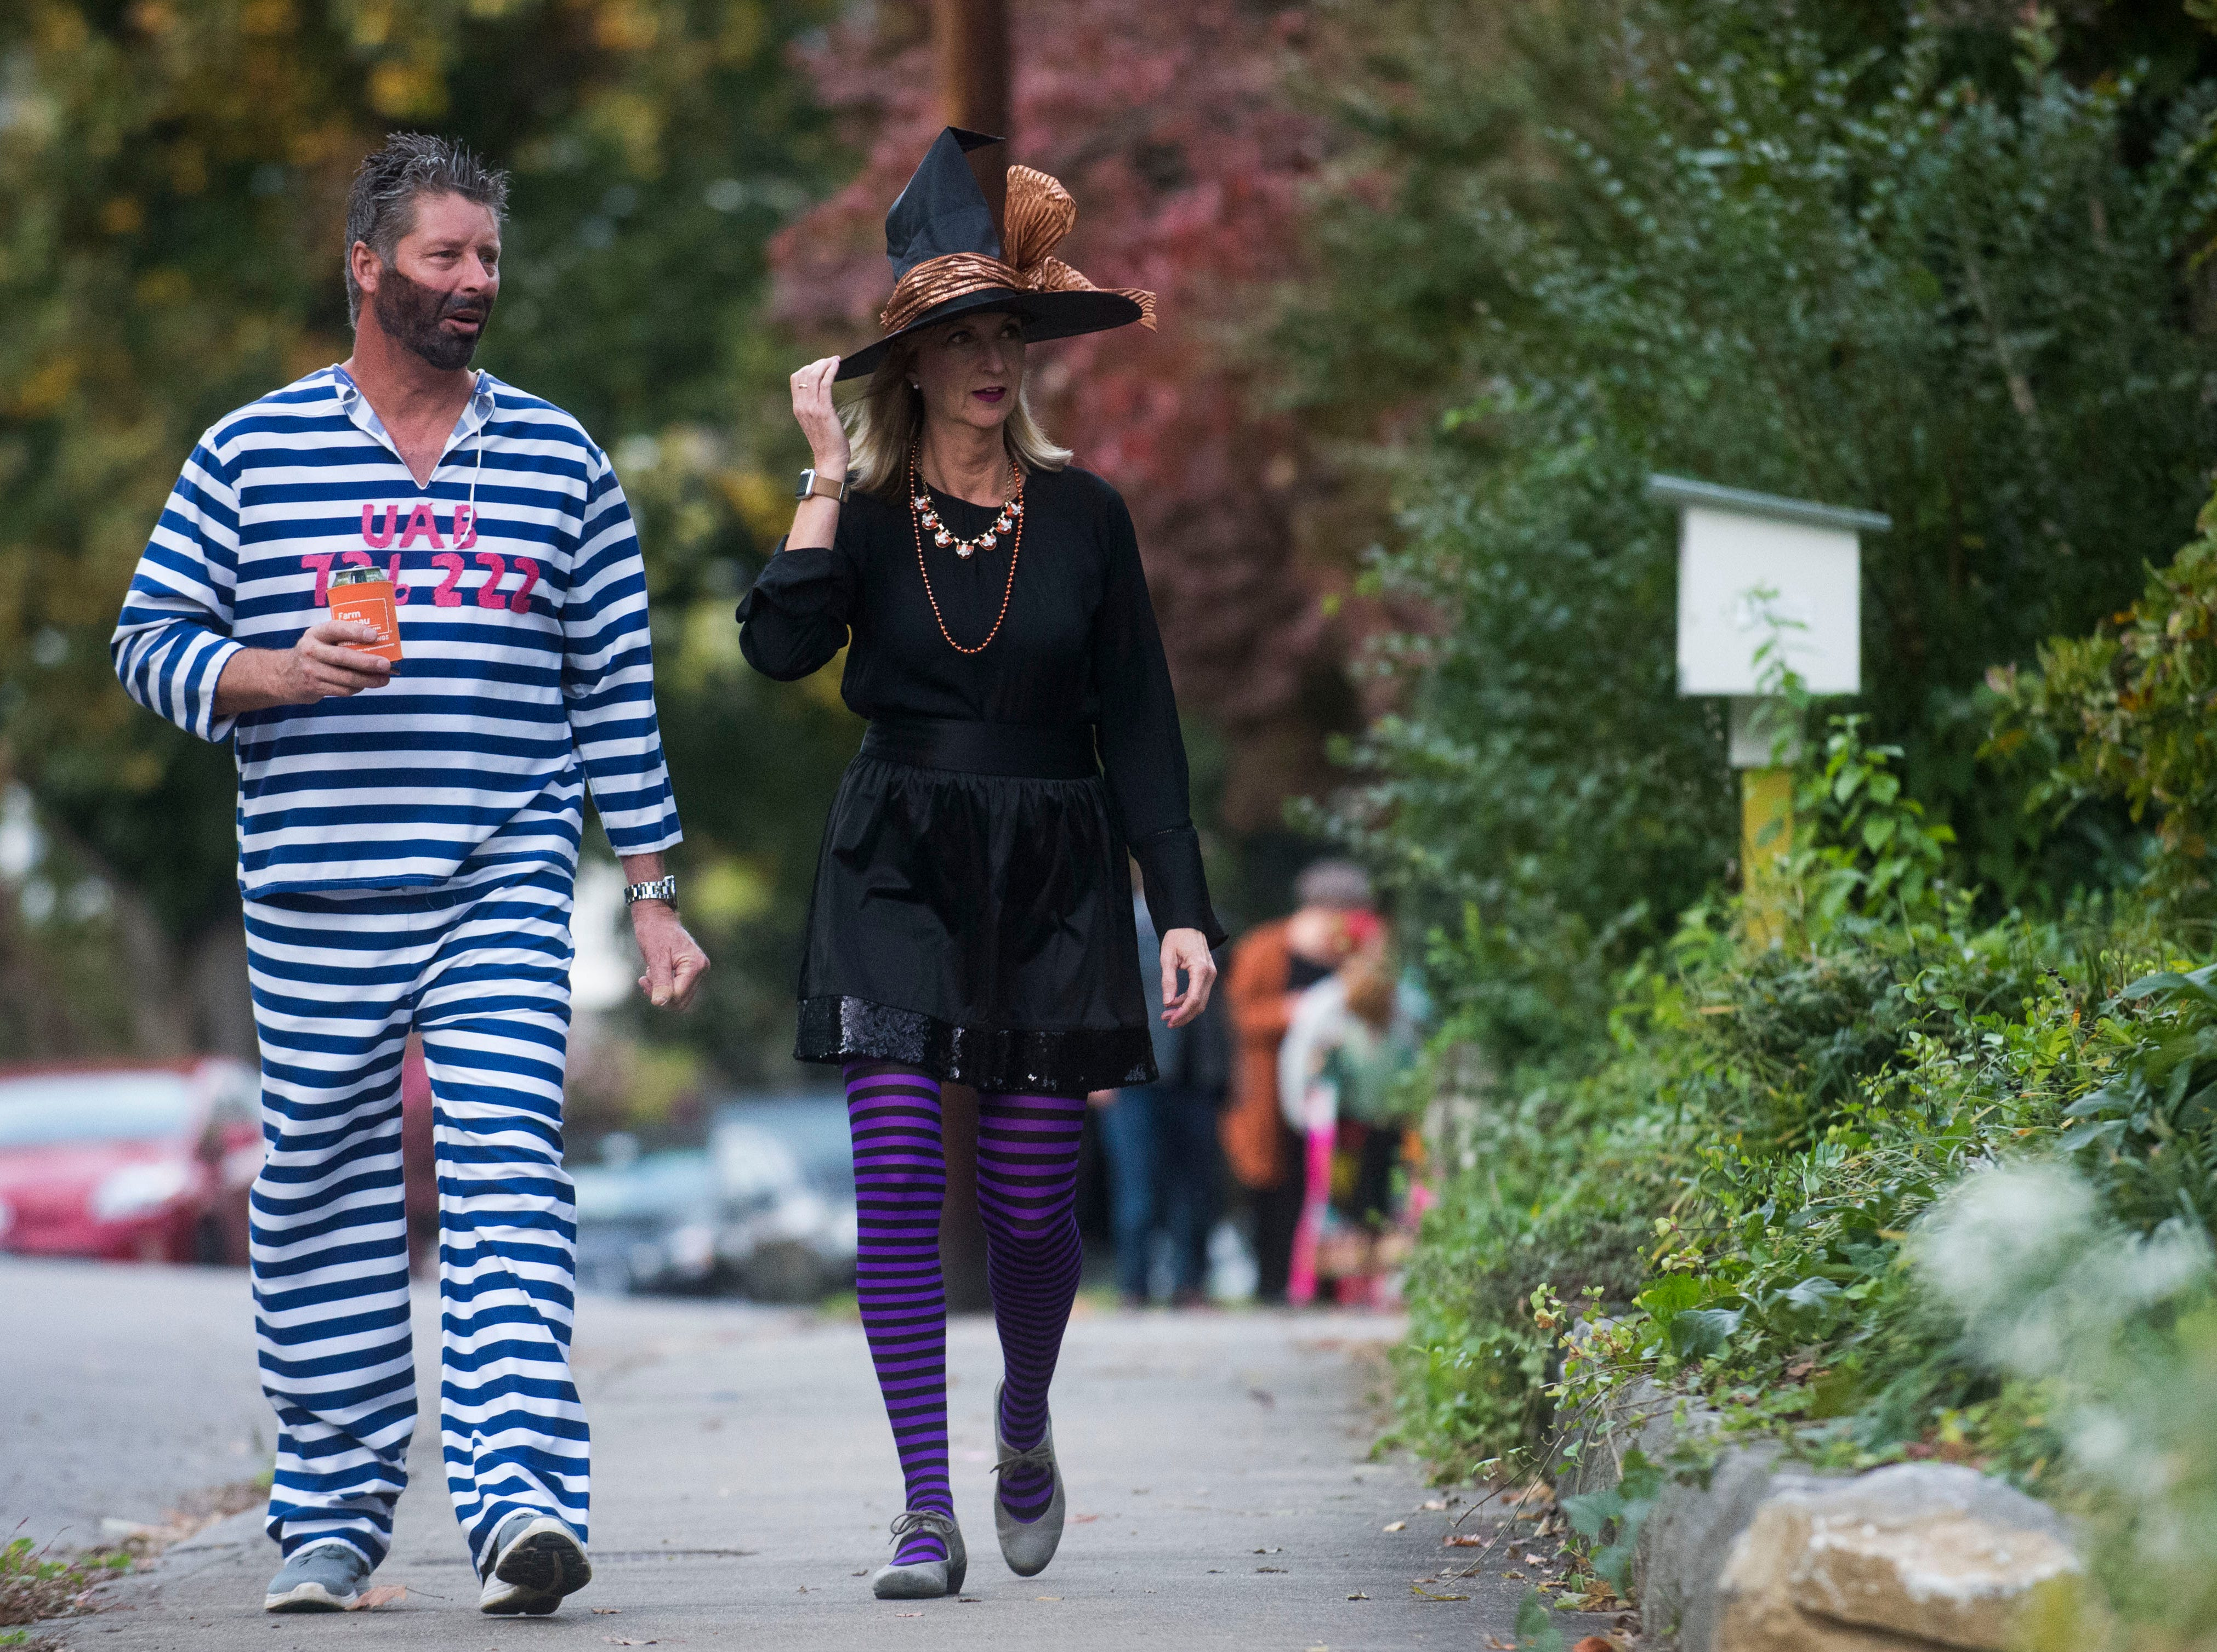 Remy and Susan Hebert walk towards a party in the Fourth and Gill neighborhood in Knoxville, Wed. Oct. 31, 2018.